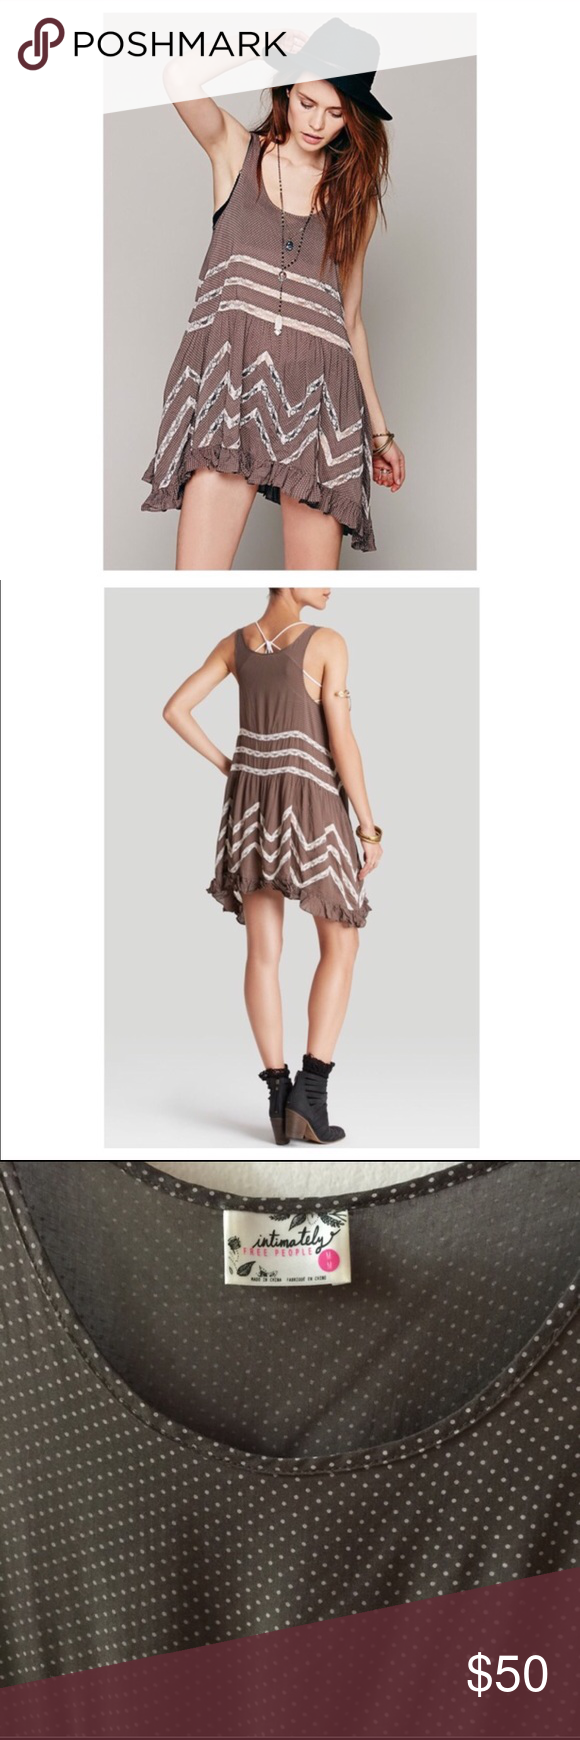 Free people trapeze dress Gray/ brown free people dress. Size small/medium. Only worn a few times. No trades please Free People Dresses